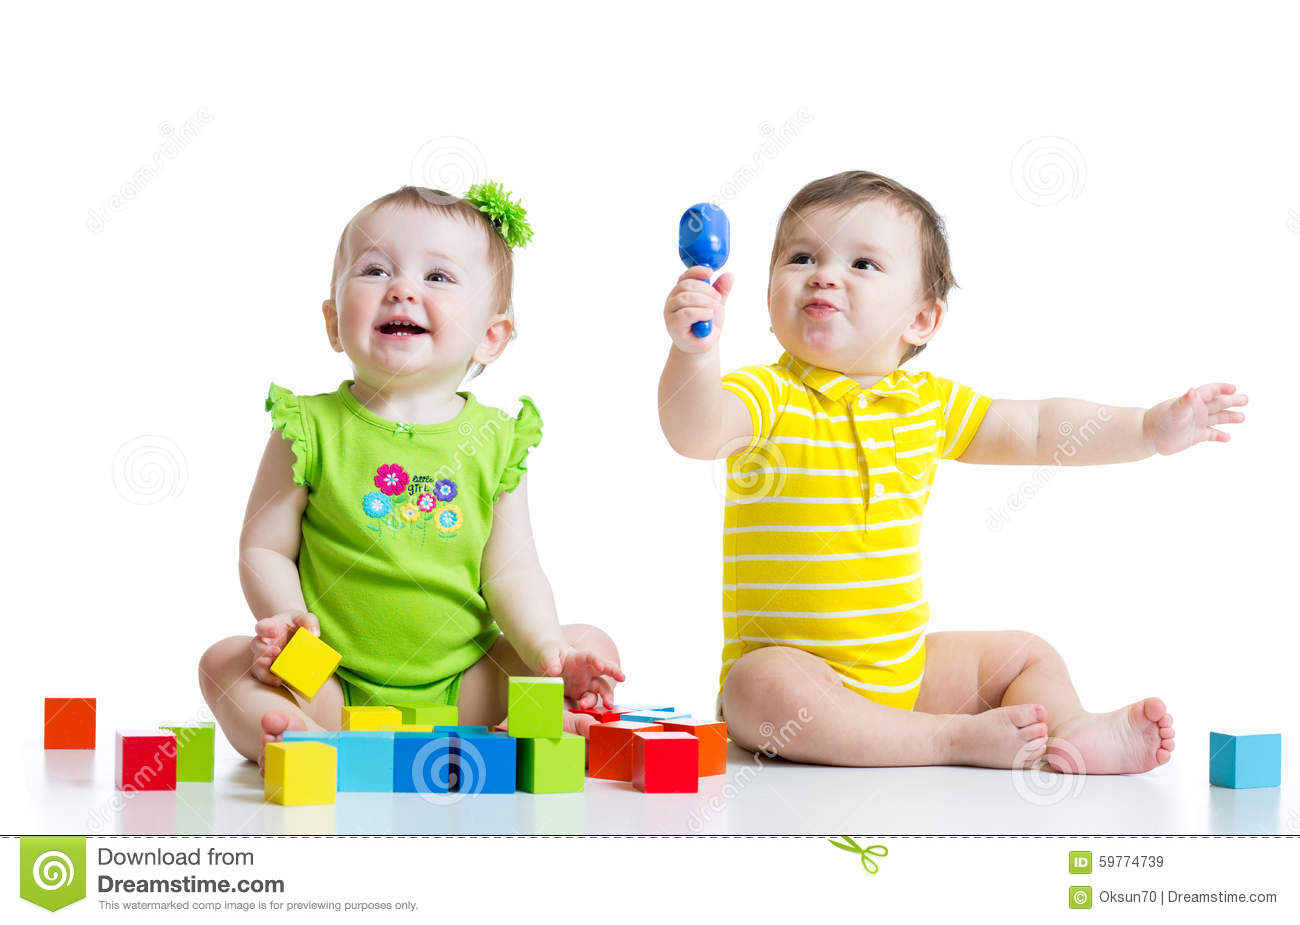 Stock Photography Spitz Dog Eating Food Dish Isolated White Background Image40606952 further Stock Photo Two Adorable Babies Playing Toys Toddlers Educational Girl Boy Sitting Floor Isolated White Background Image59774739 further Promis Sleep Scale as well Raza De Perros Akita Inu further Night Of The Ugly Shoes. on 296 people sitting